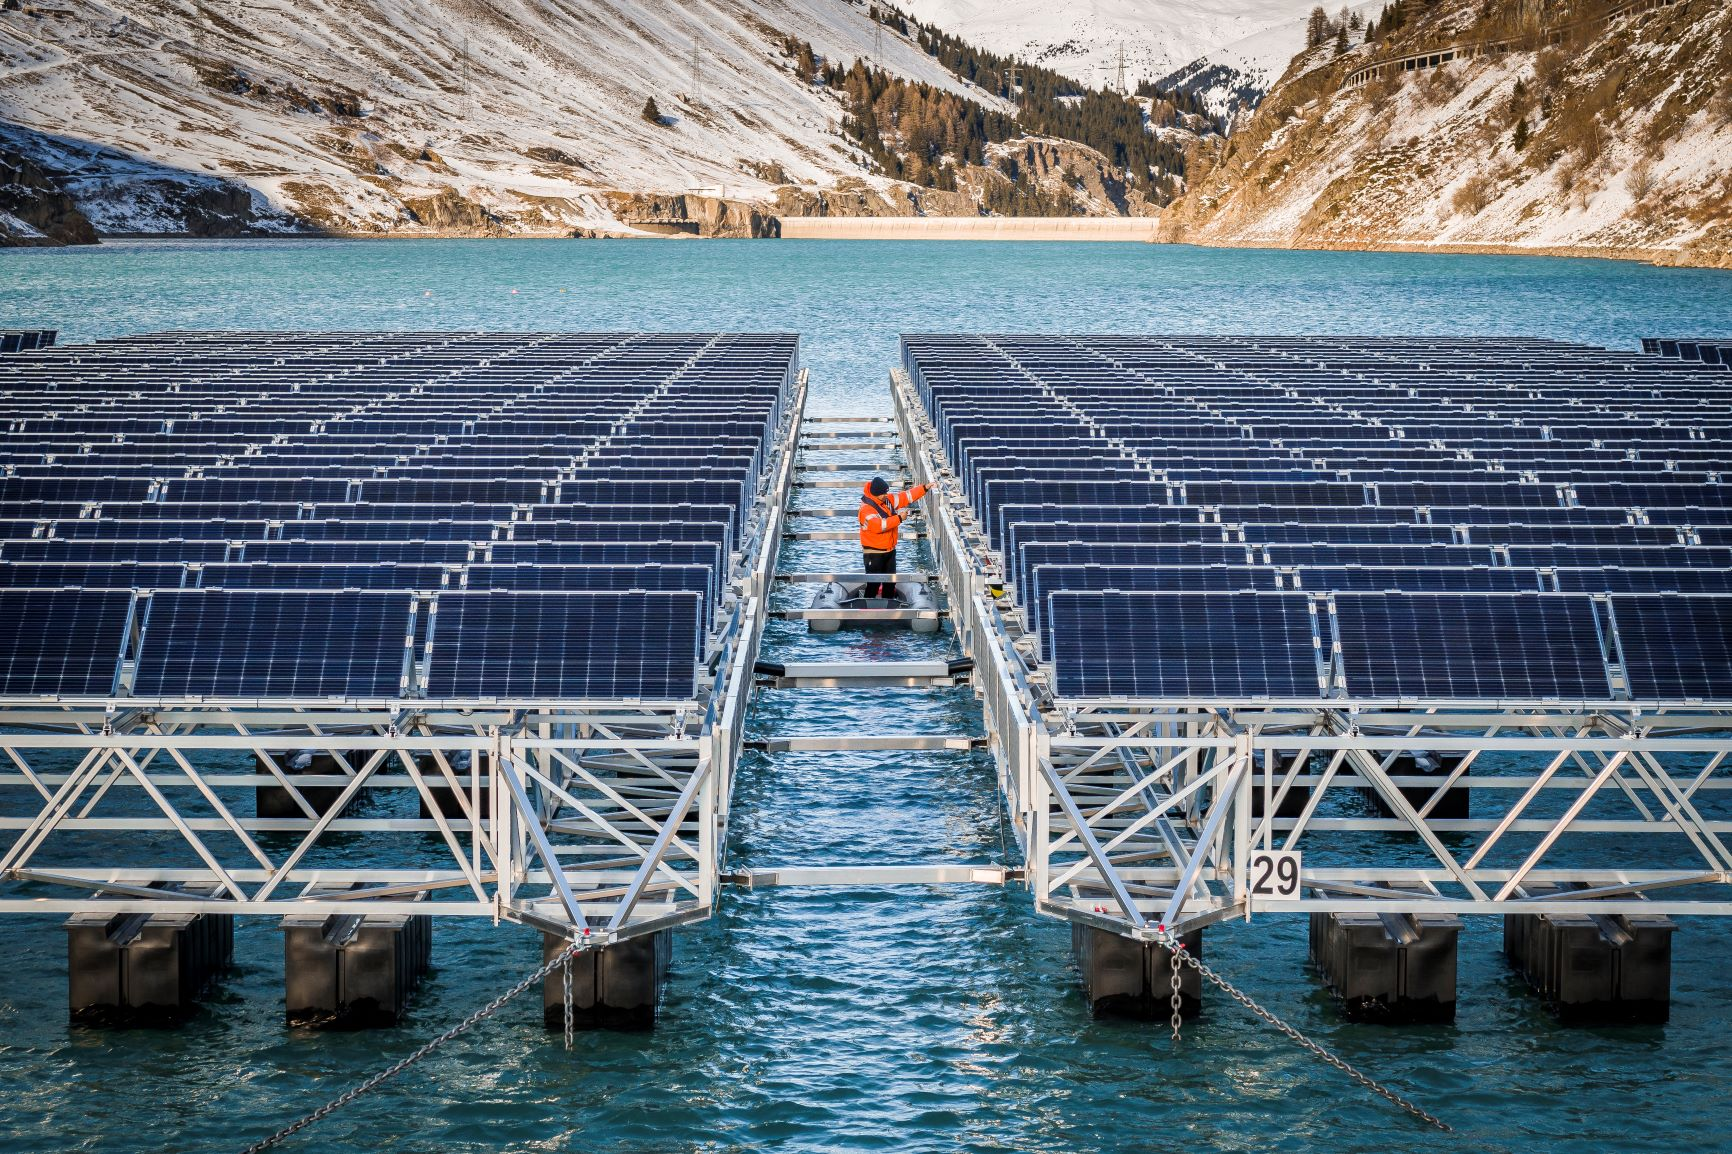 The Lac des Toules solar power plant does not pose a threat to any aquatic ecosystems: the reservoir is drained every winter, with no time for flora and fauna to develop © Romande Energie